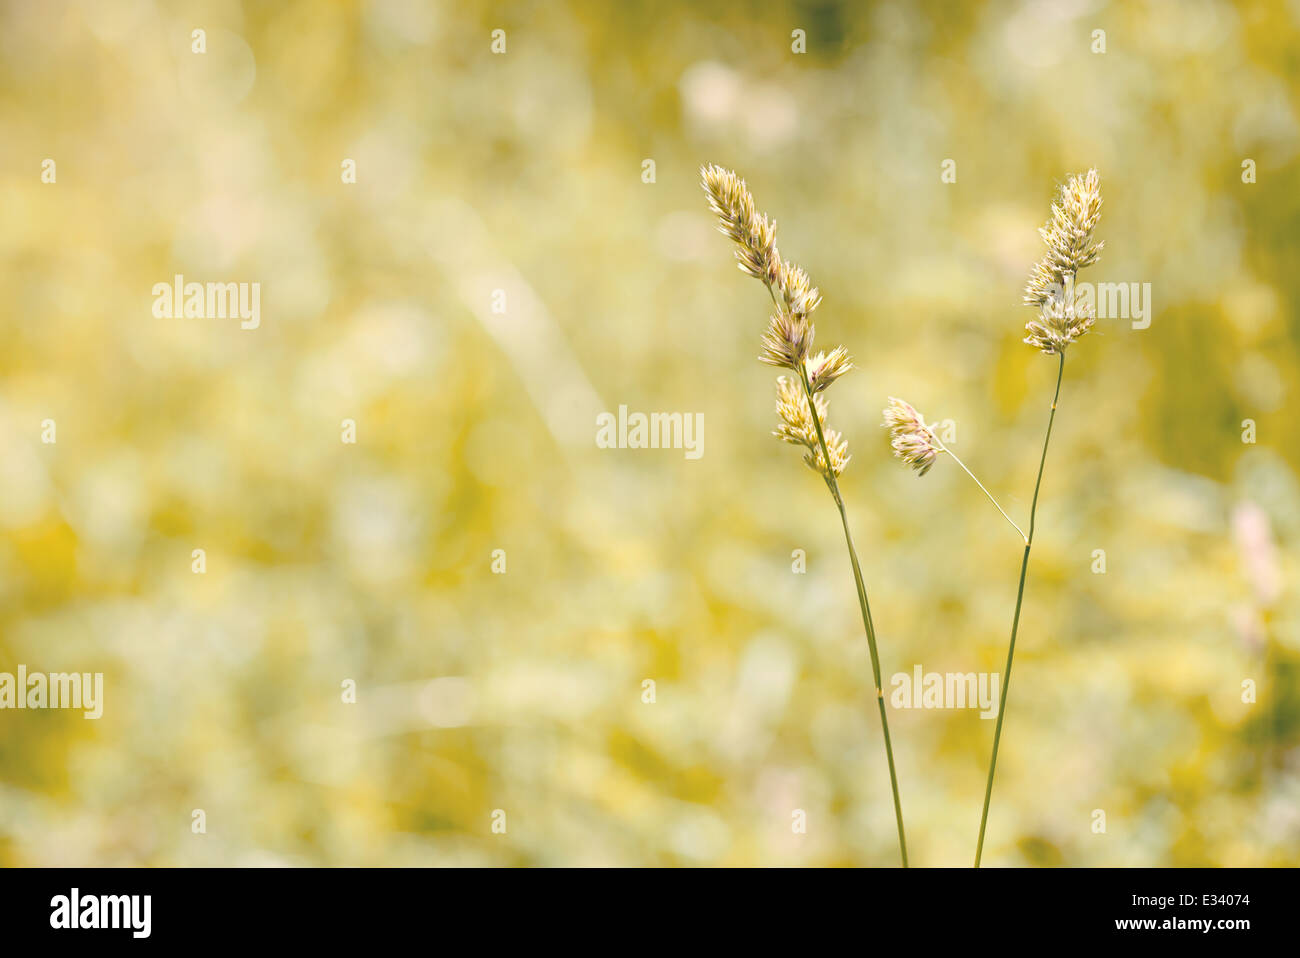 Gramineae herbs moved by the wind in a meadow under the warm spring sun - Stock Image